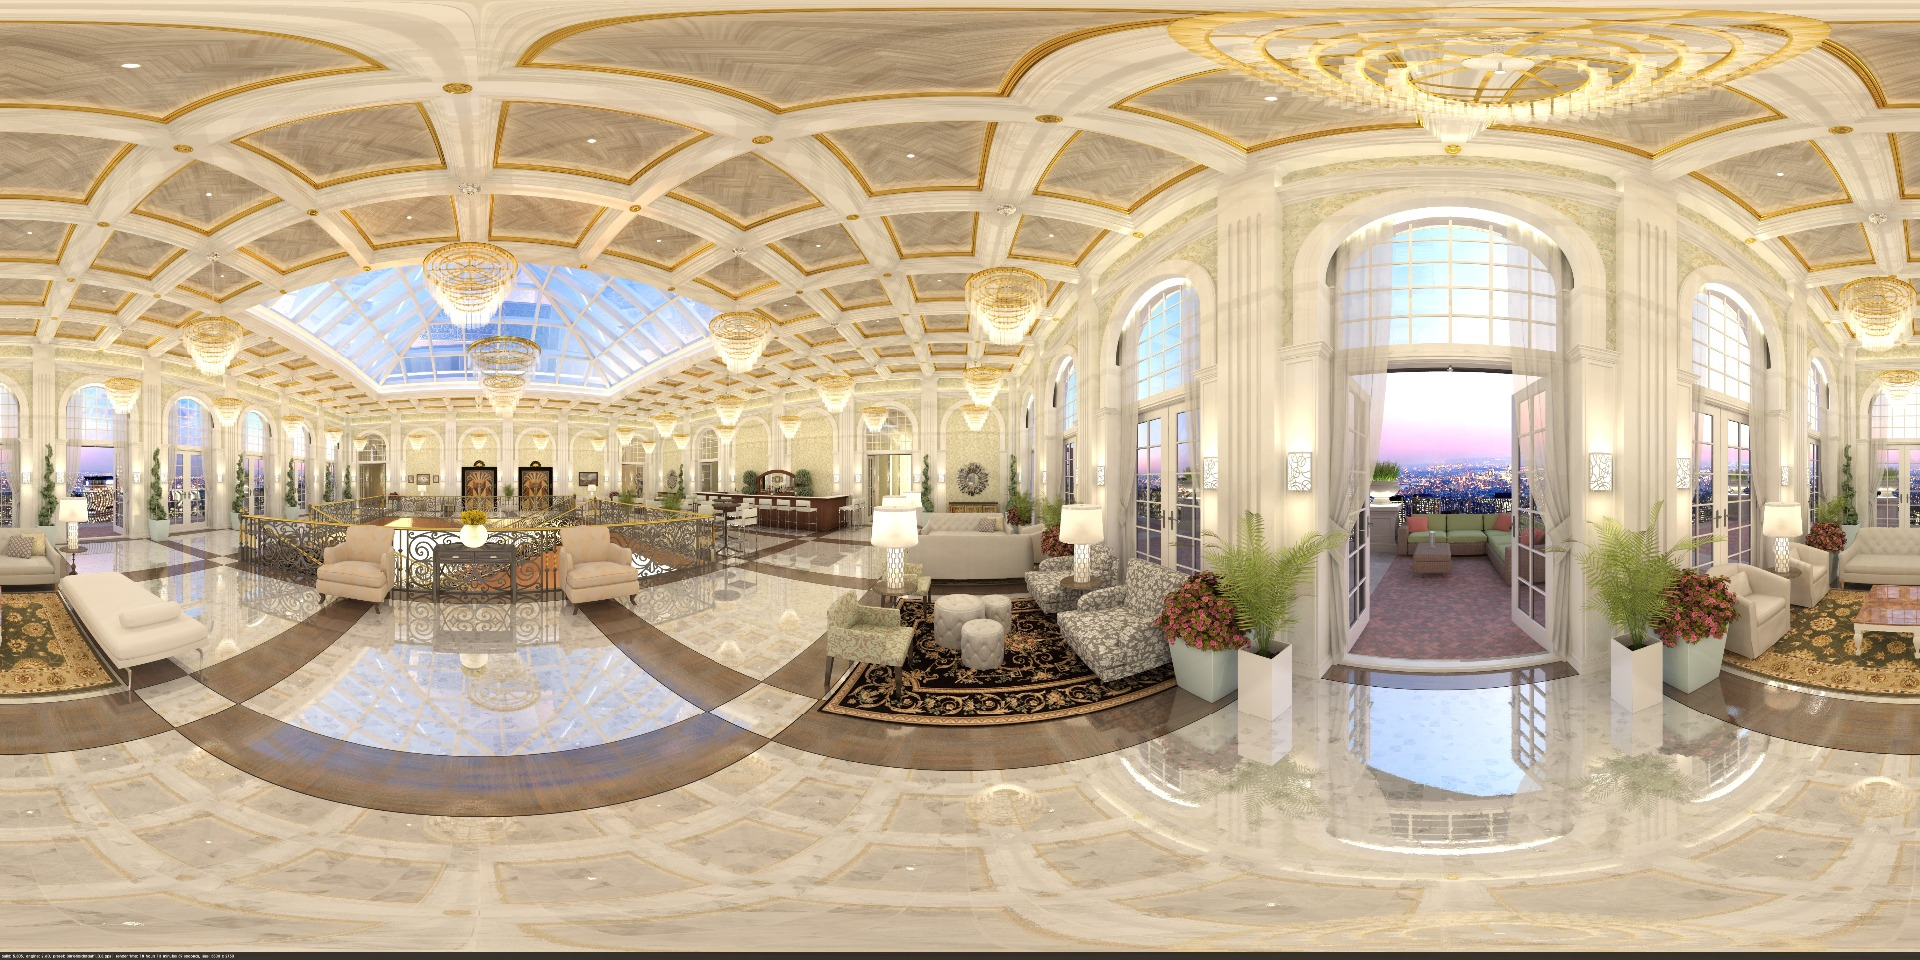 classical interior_FULL_atrium 2016-11-13 03504000000.jpg